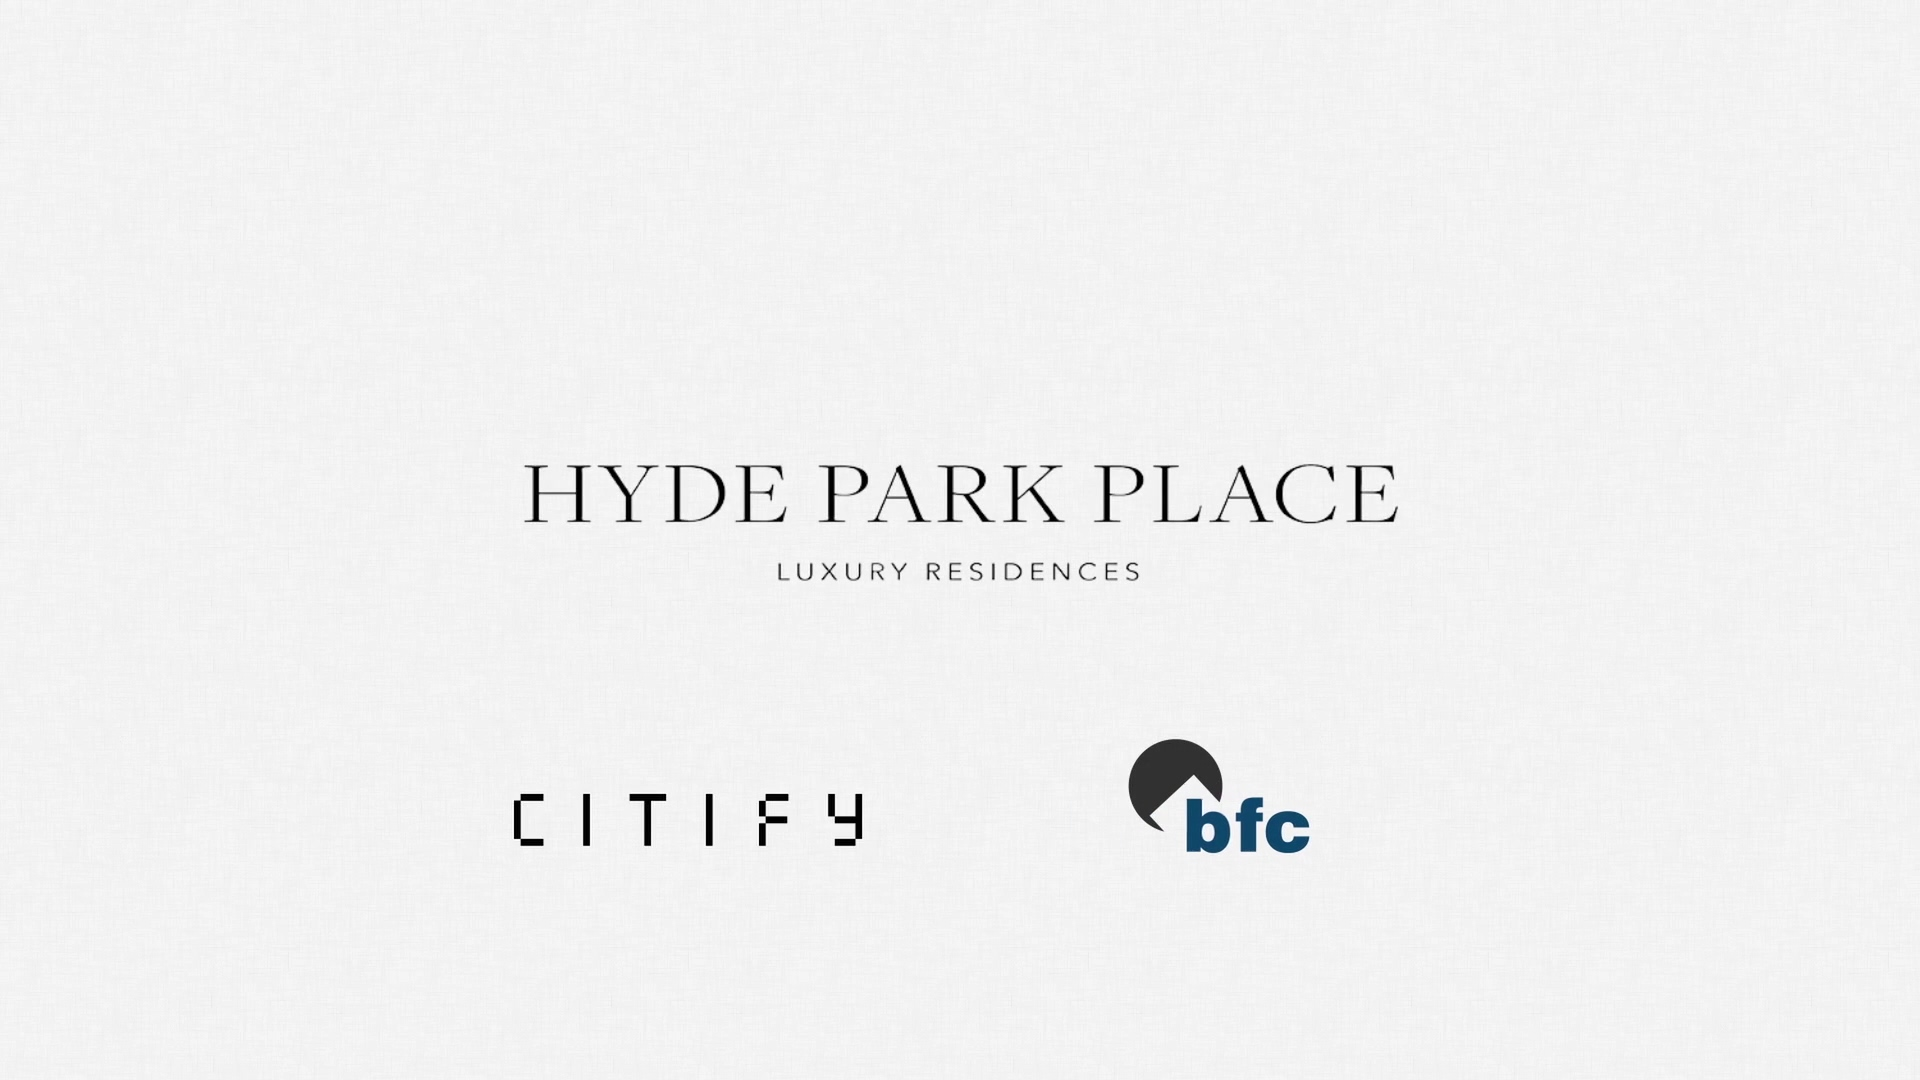 Citify - Hyde Park Place - December 2019